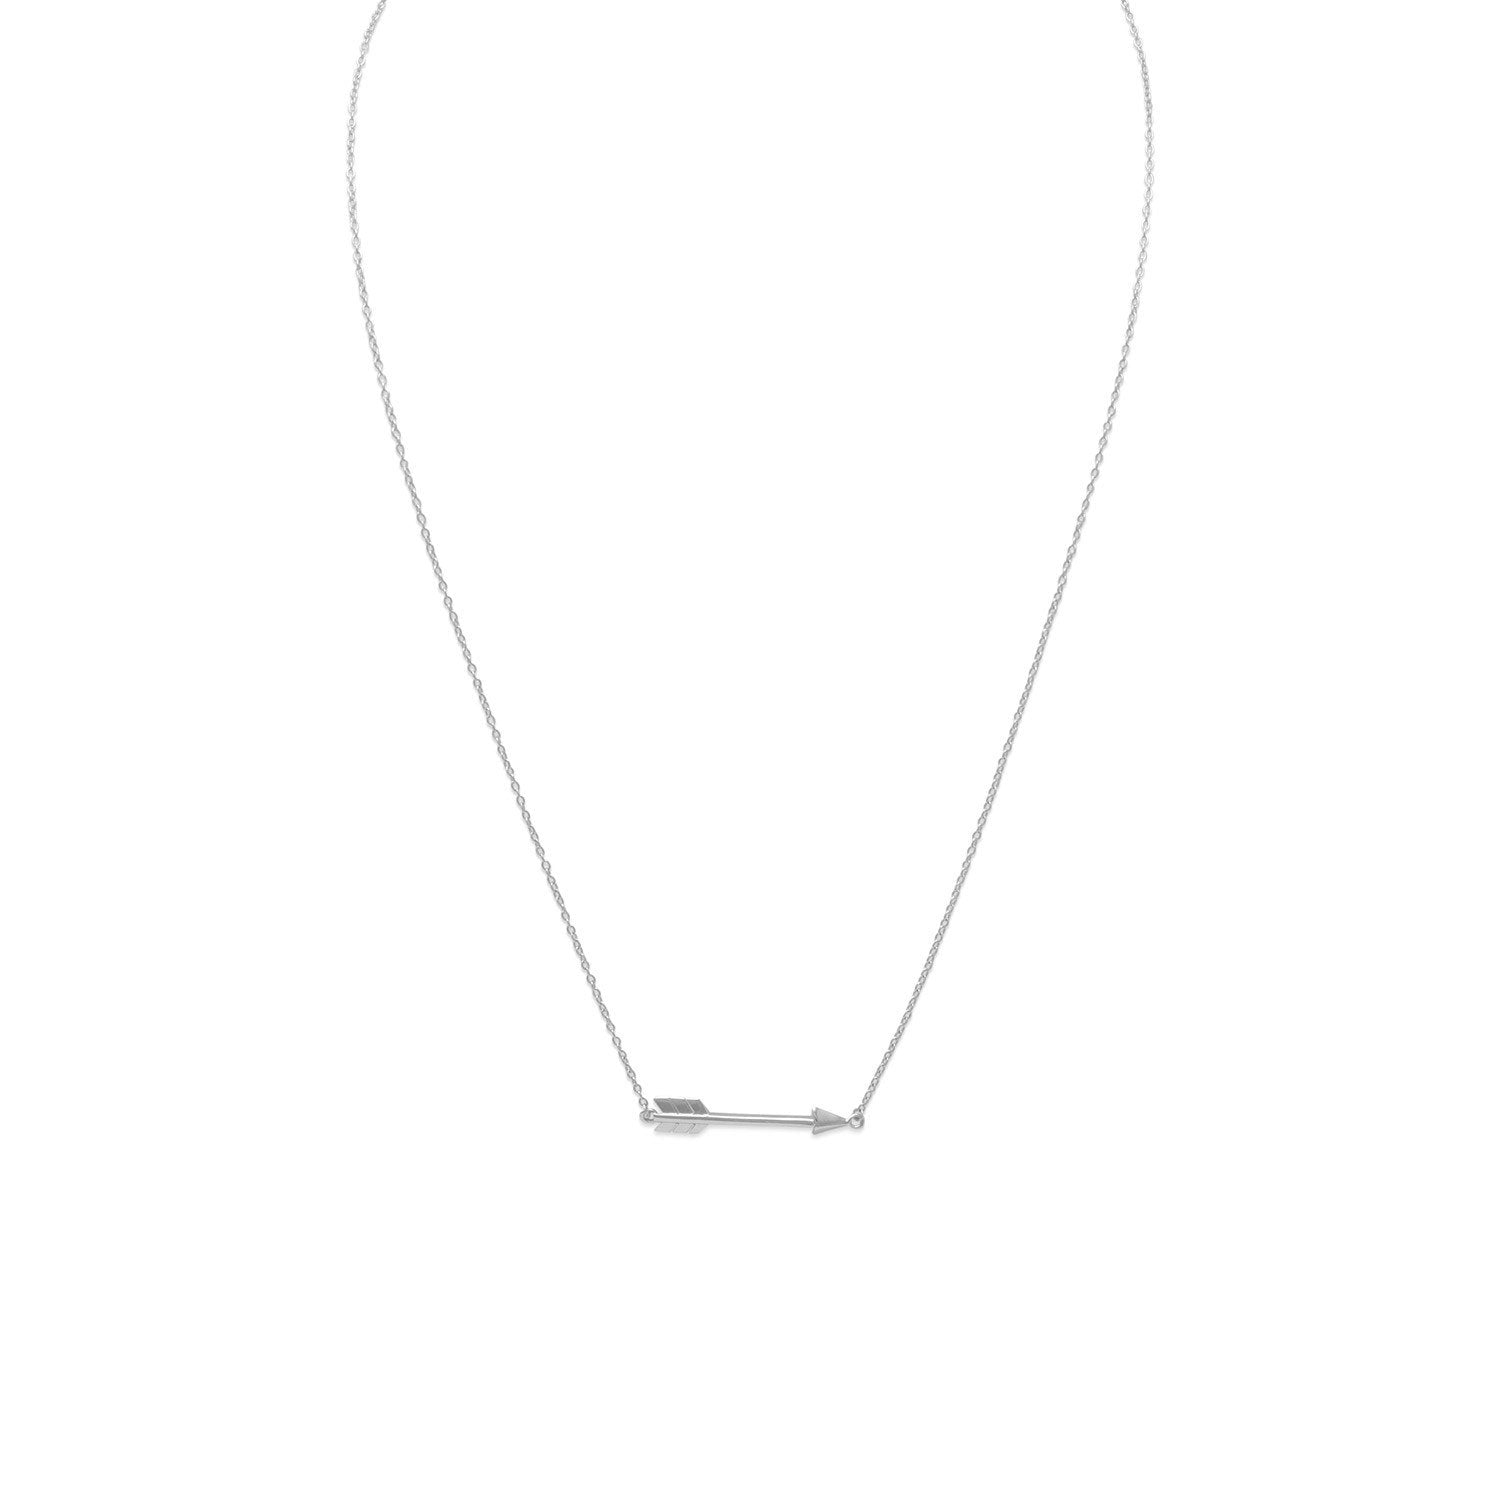 Aim High Arrow Necklace - Rocky Mt. Discount Outlet